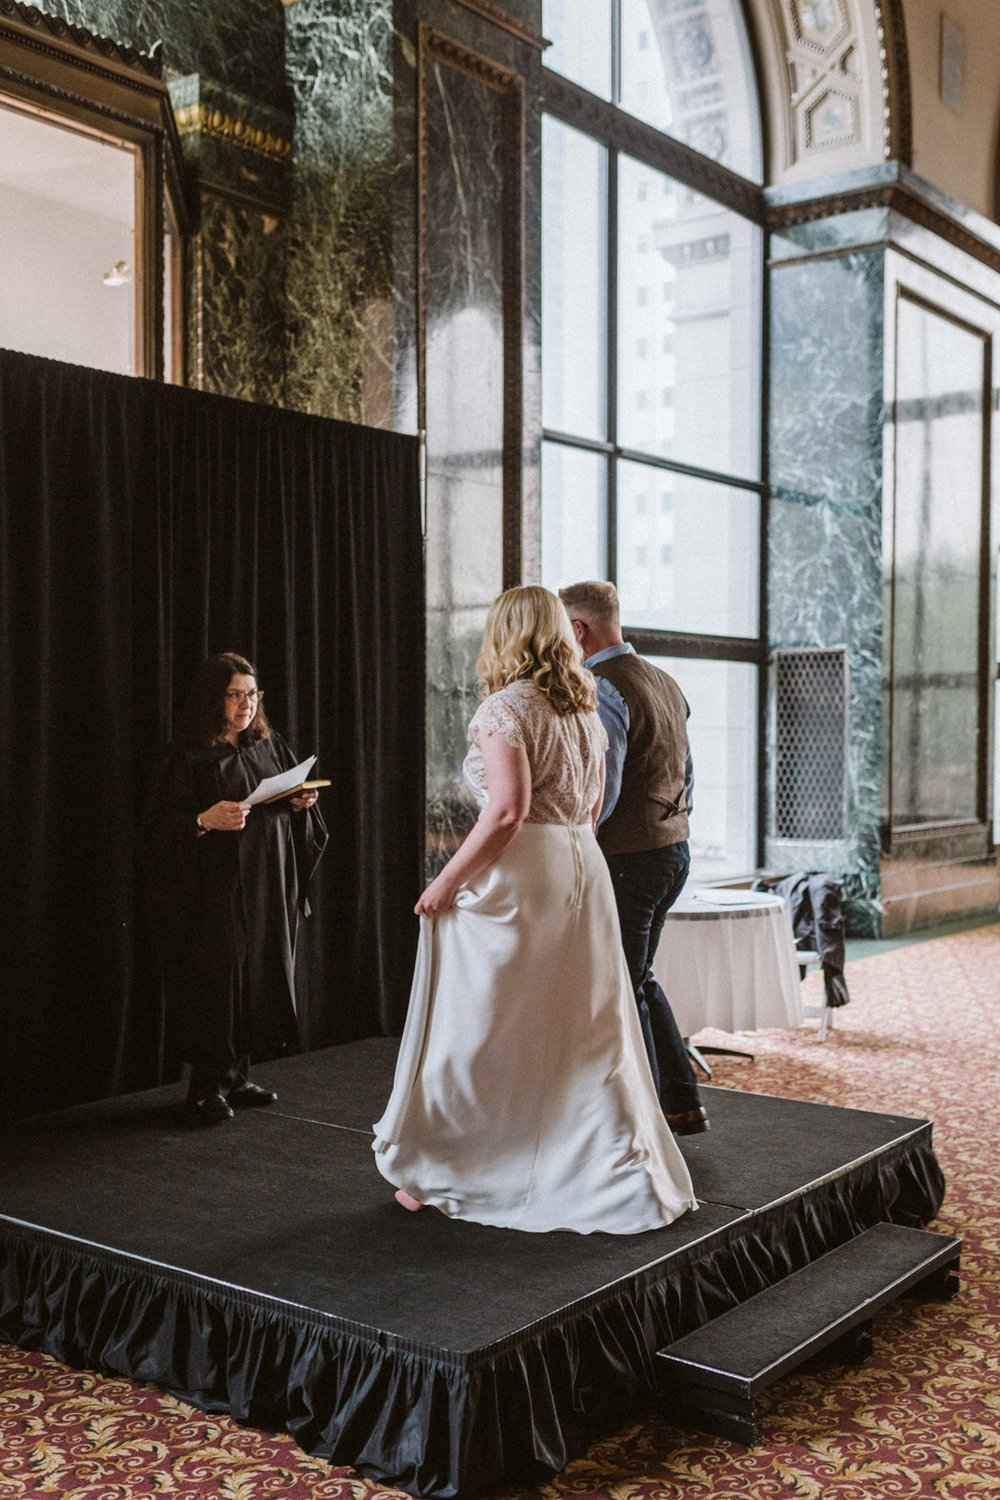 Chicago Cultural Center weddings | Chicago elopements | lisa kathan photography